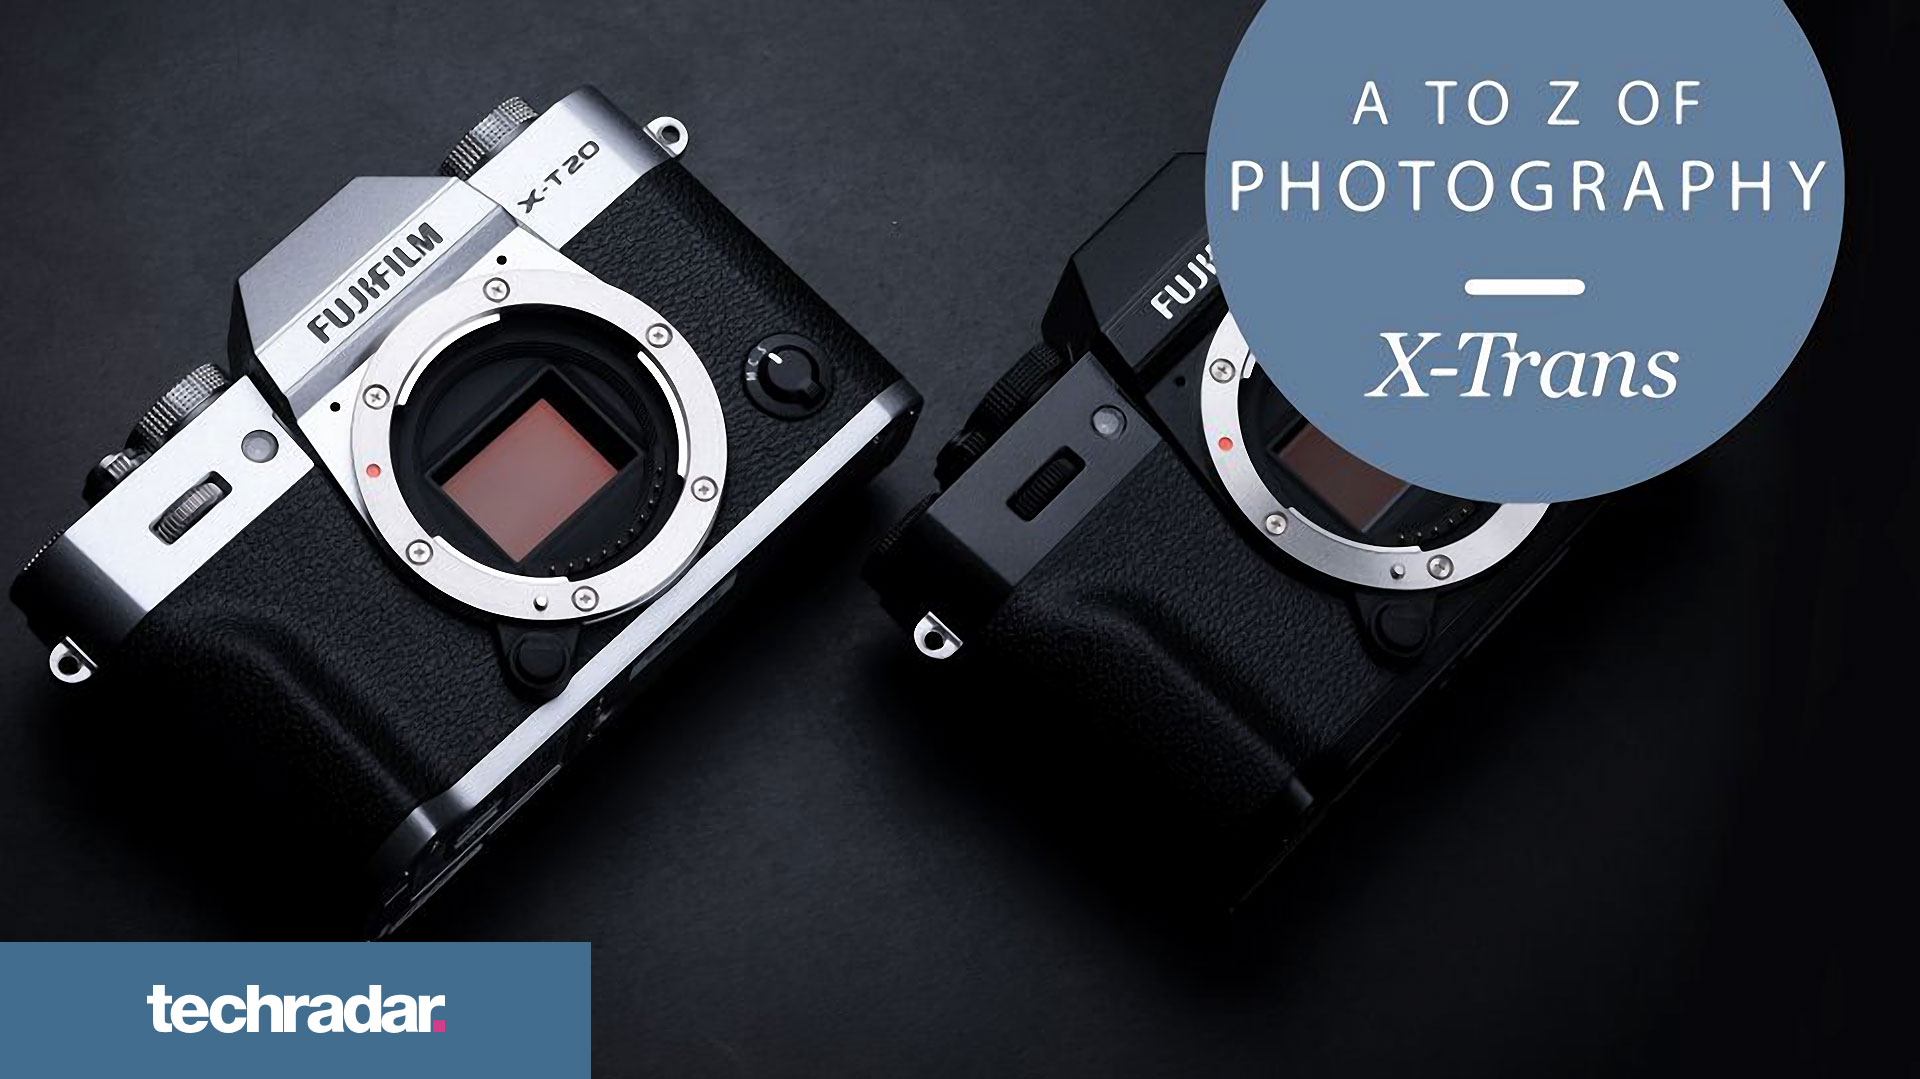 The A to Z of Photography: X-Trans